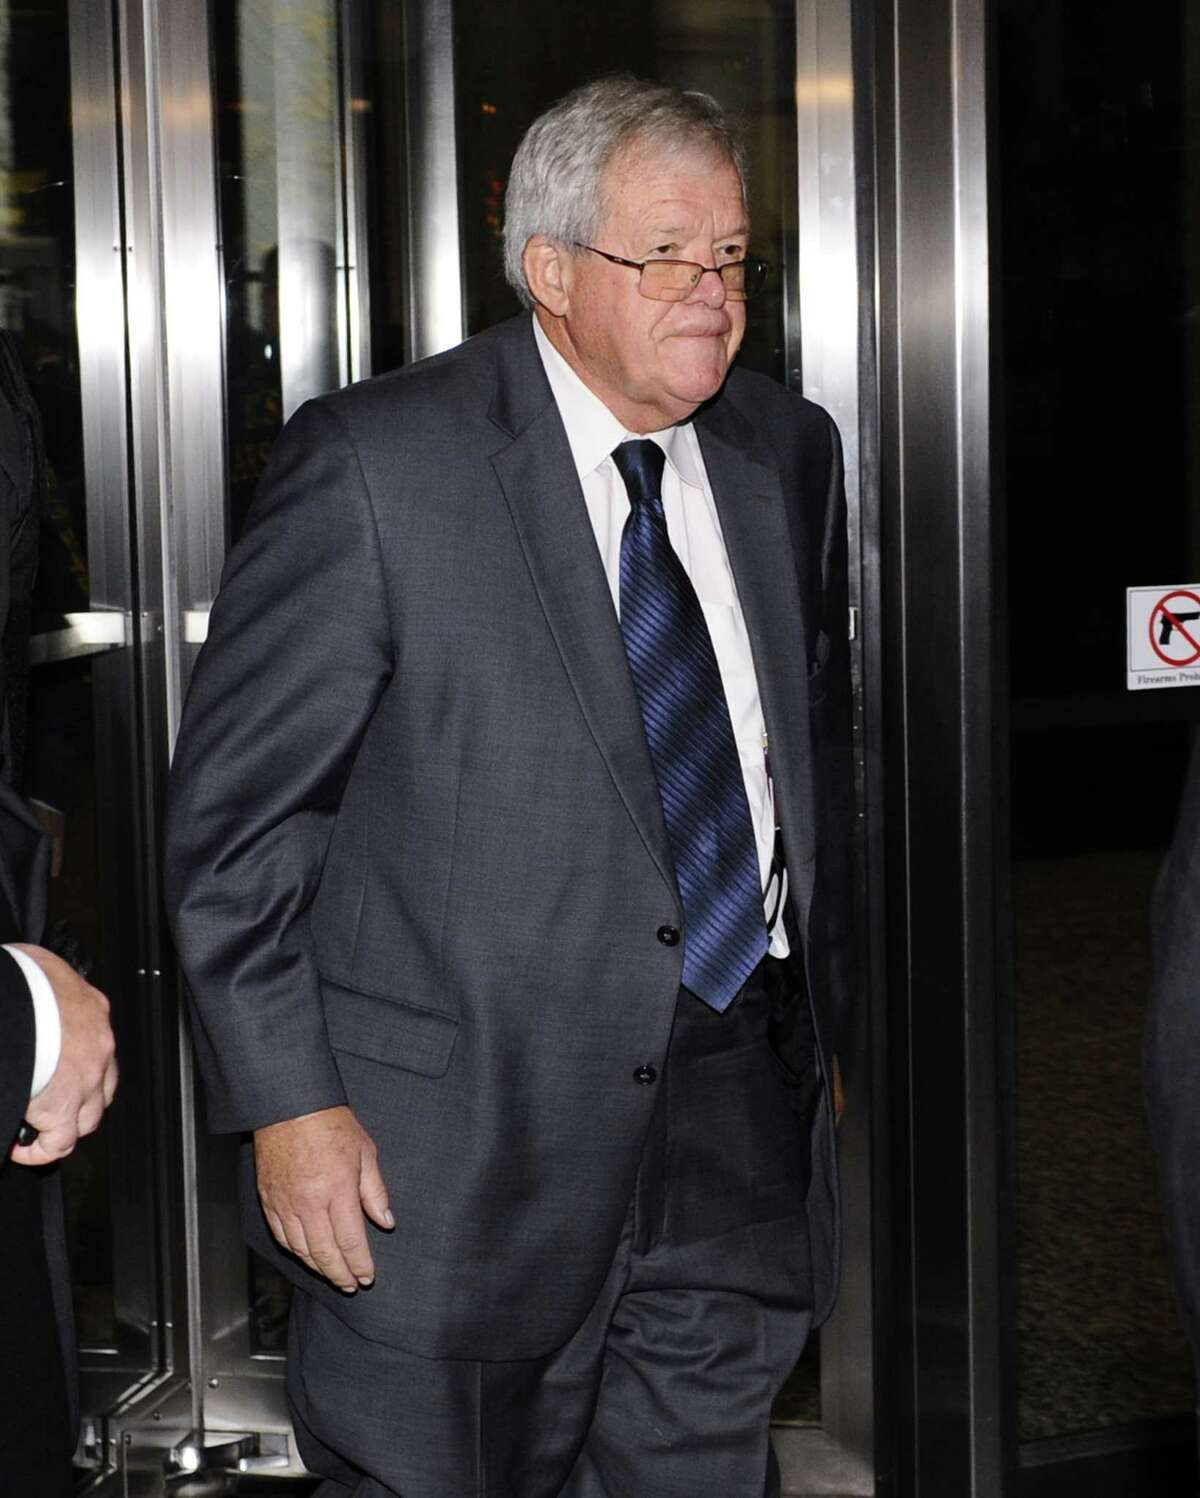 Former U.S. House Speaker Dennis Hastert leaves the federal courthouse Wednesday, Oct. 28, 2015, in Chicago, where he changed his plea to guilty in a hush money case that alleges he agreed to pay someone $3.5 million to hide claims of past misconduct.